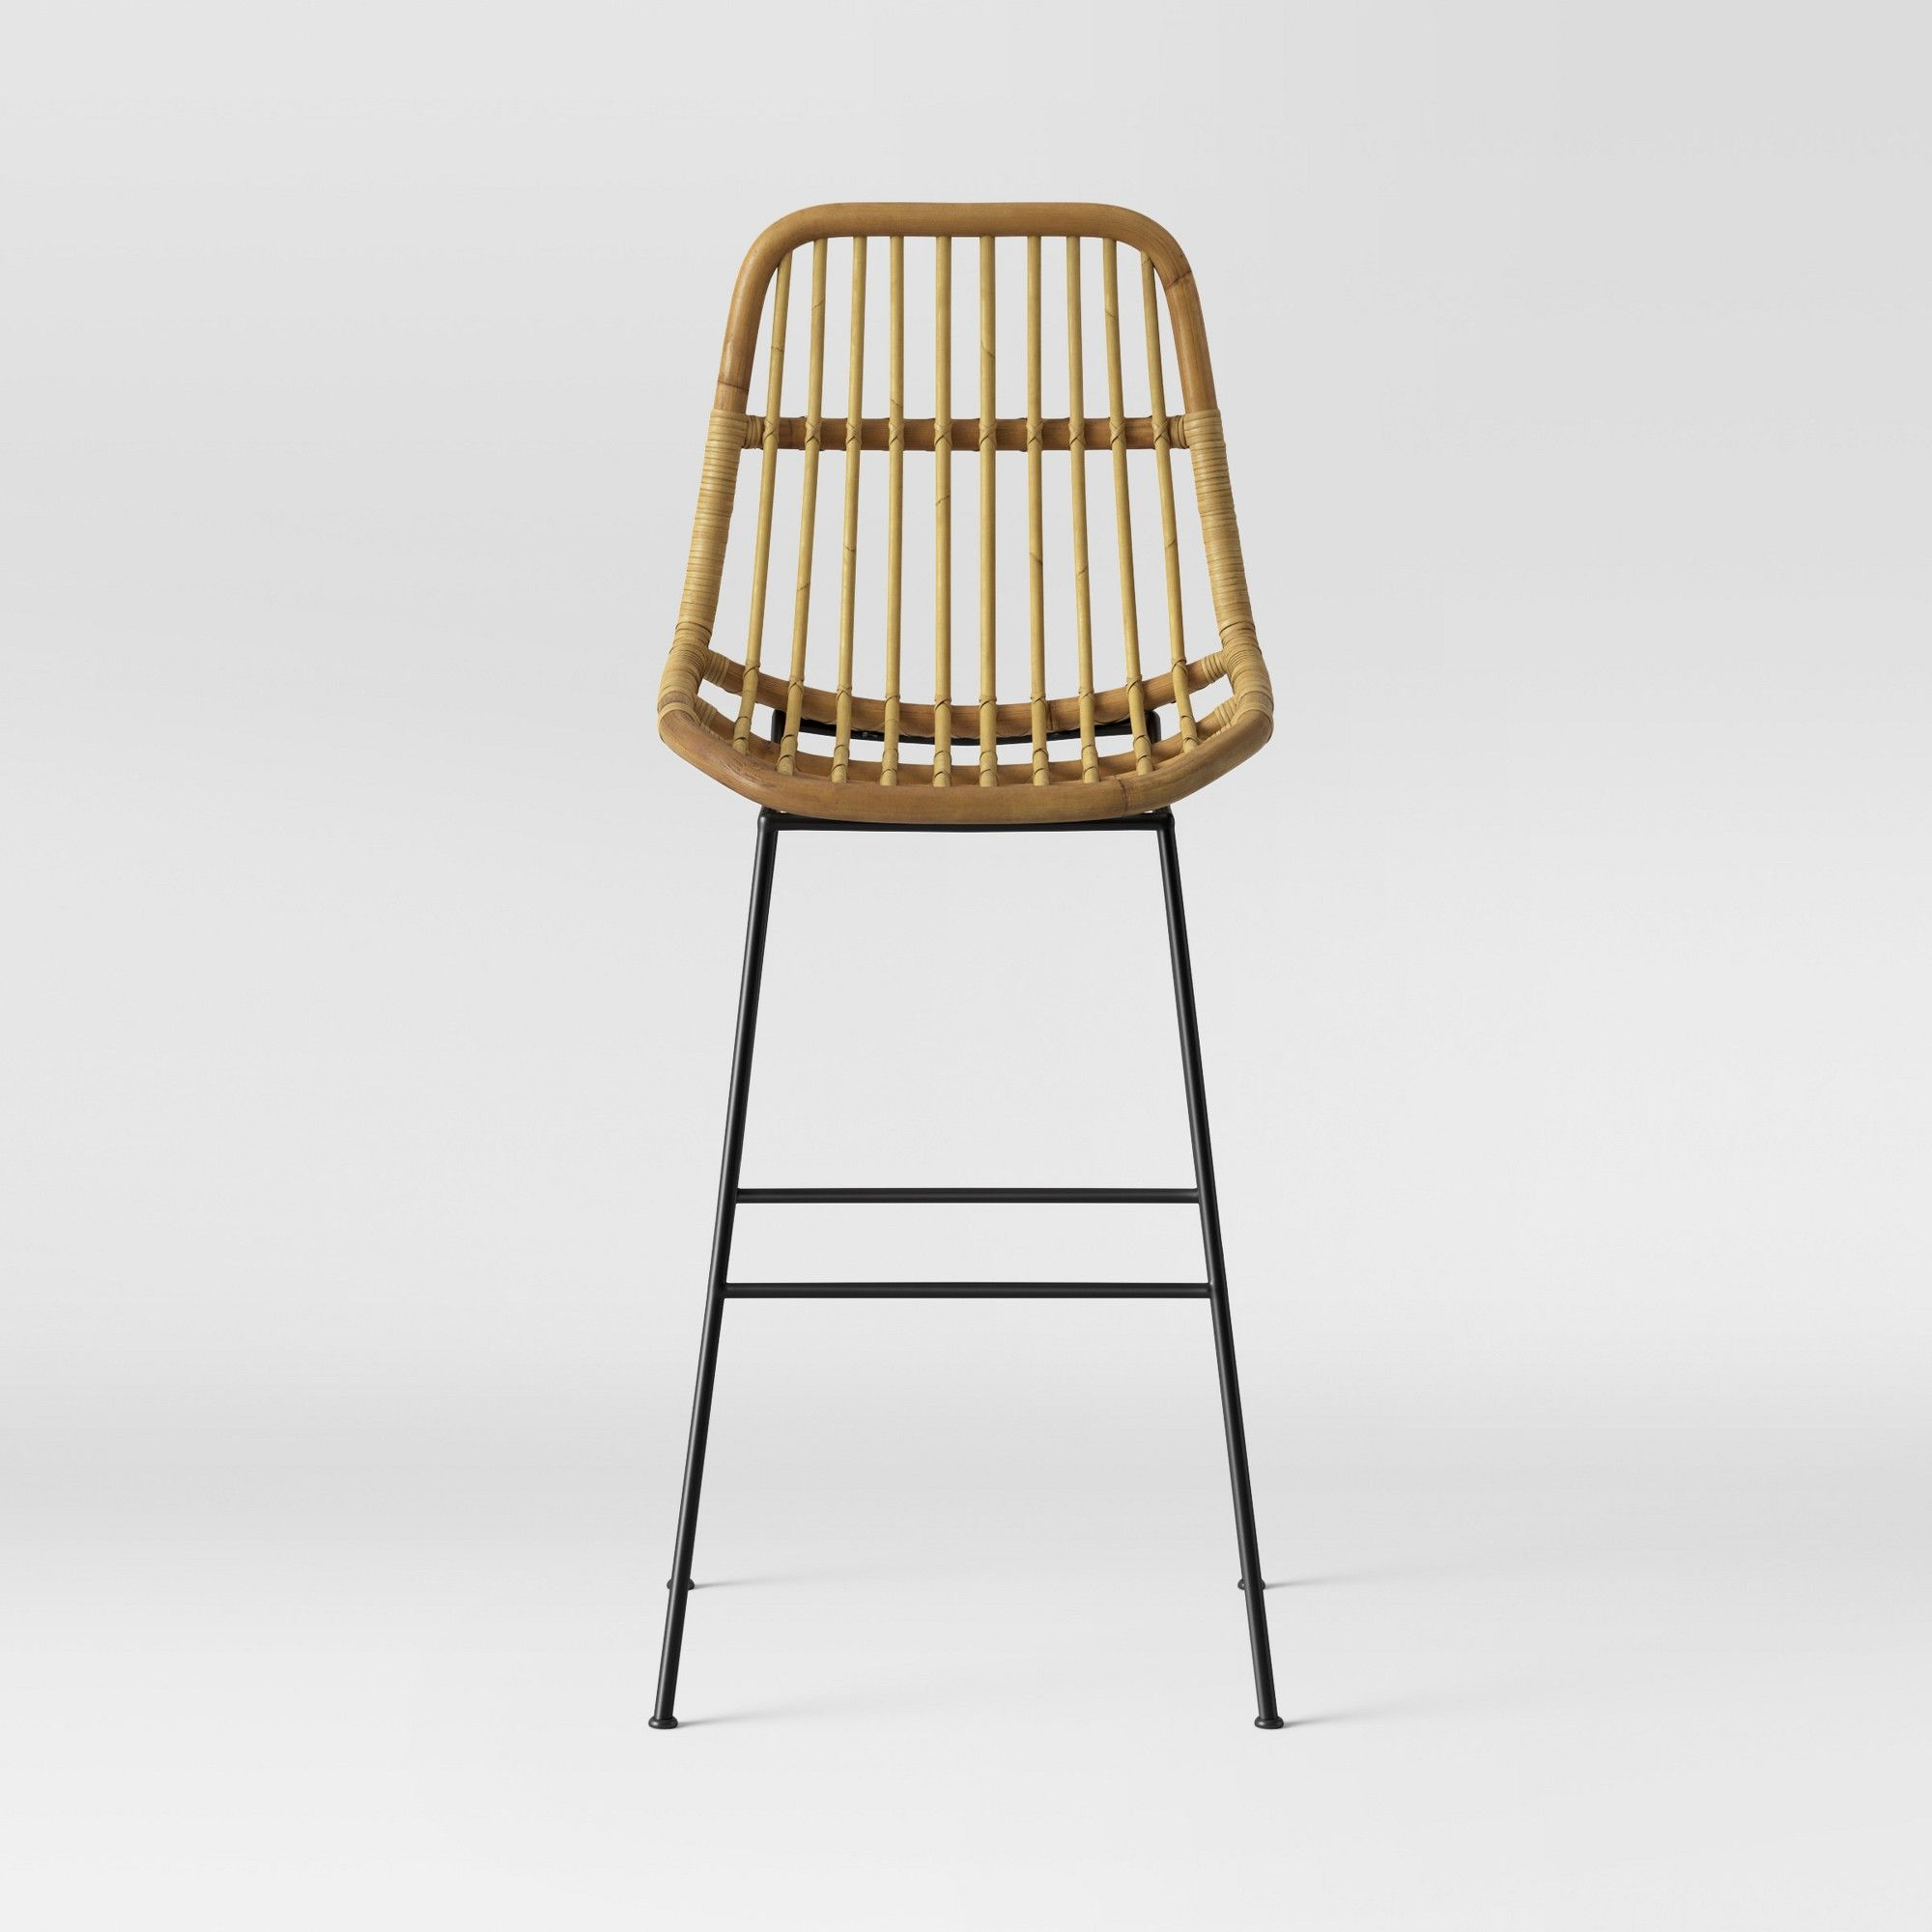 Groovy Opalhouse Linnet Rattan With Metal Legs Barstool Light Caraccident5 Cool Chair Designs And Ideas Caraccident5Info